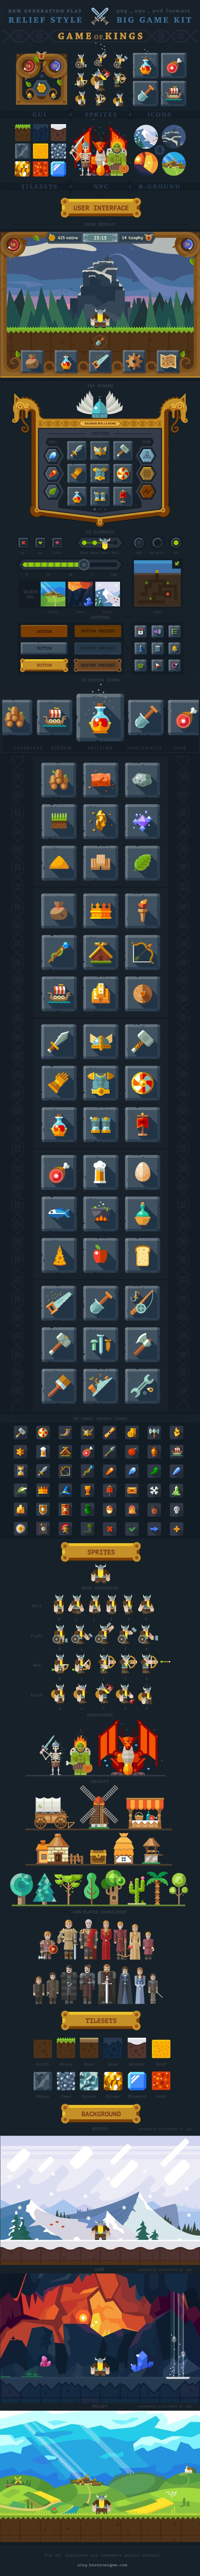 A viking-inspired interface for a side-scroller game, showing inventory, sprites, some levels, items in the game, etc.